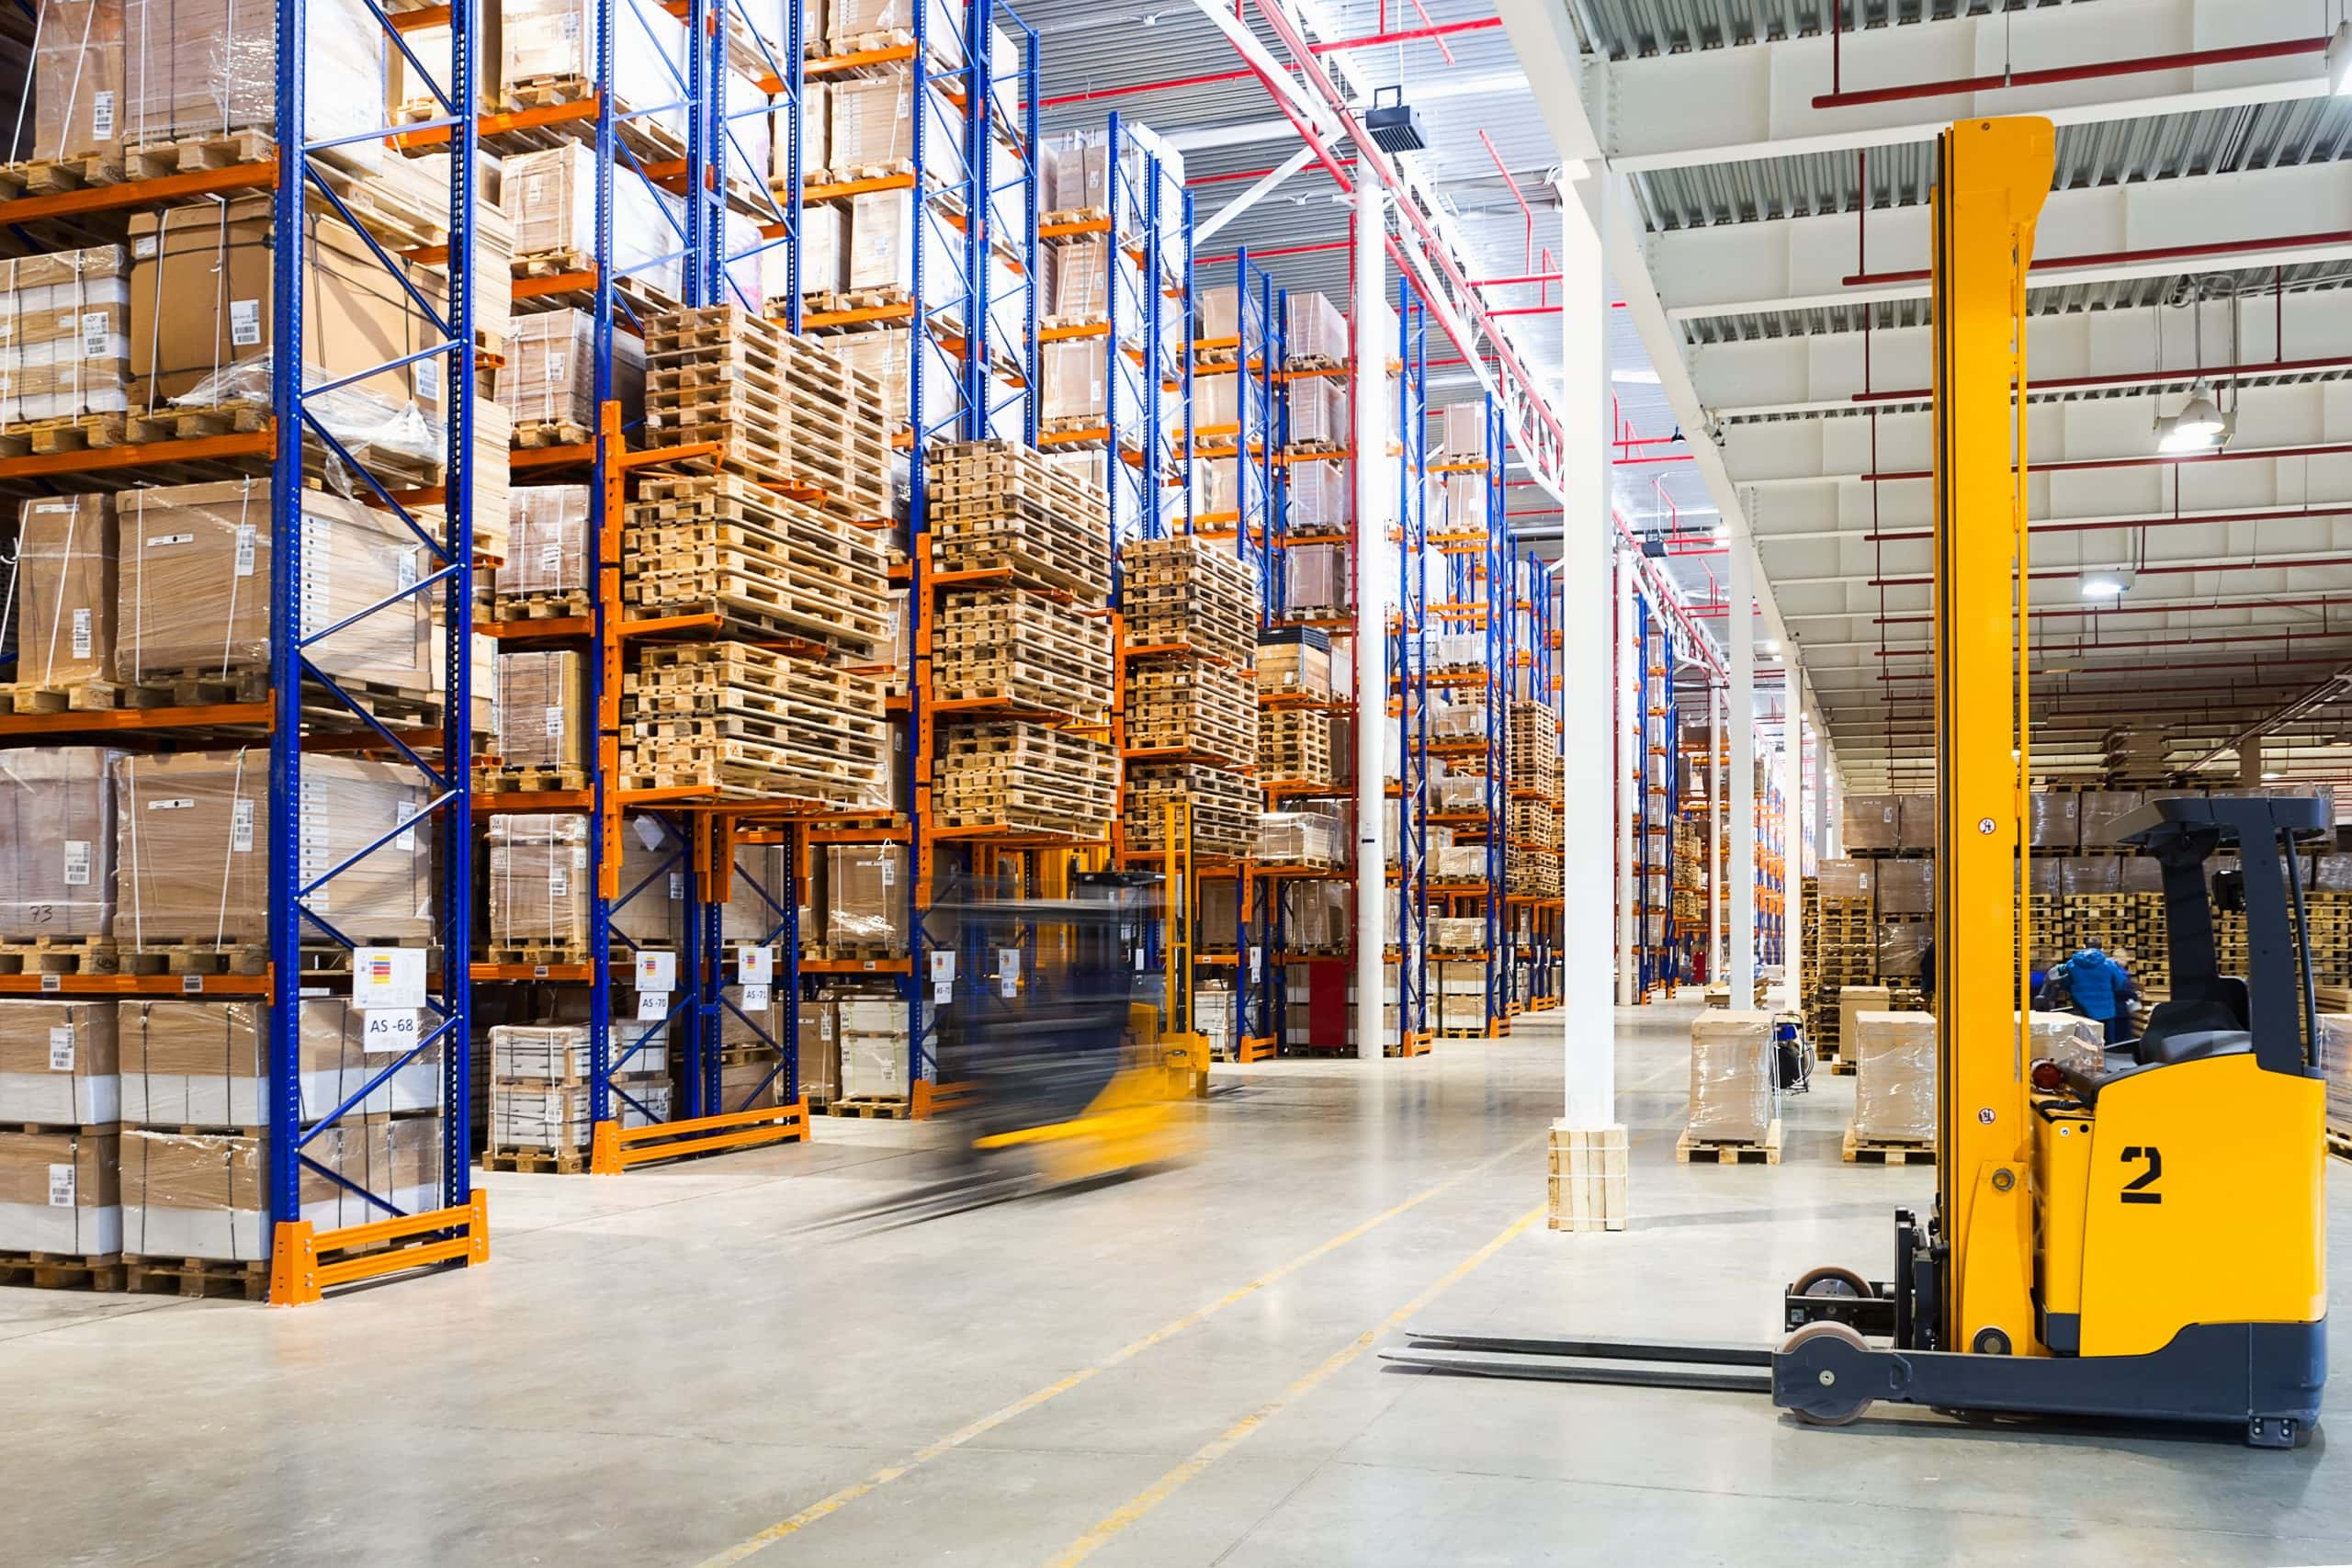 A Complete Guide to Selecting Autonomous Warehousing Solutions